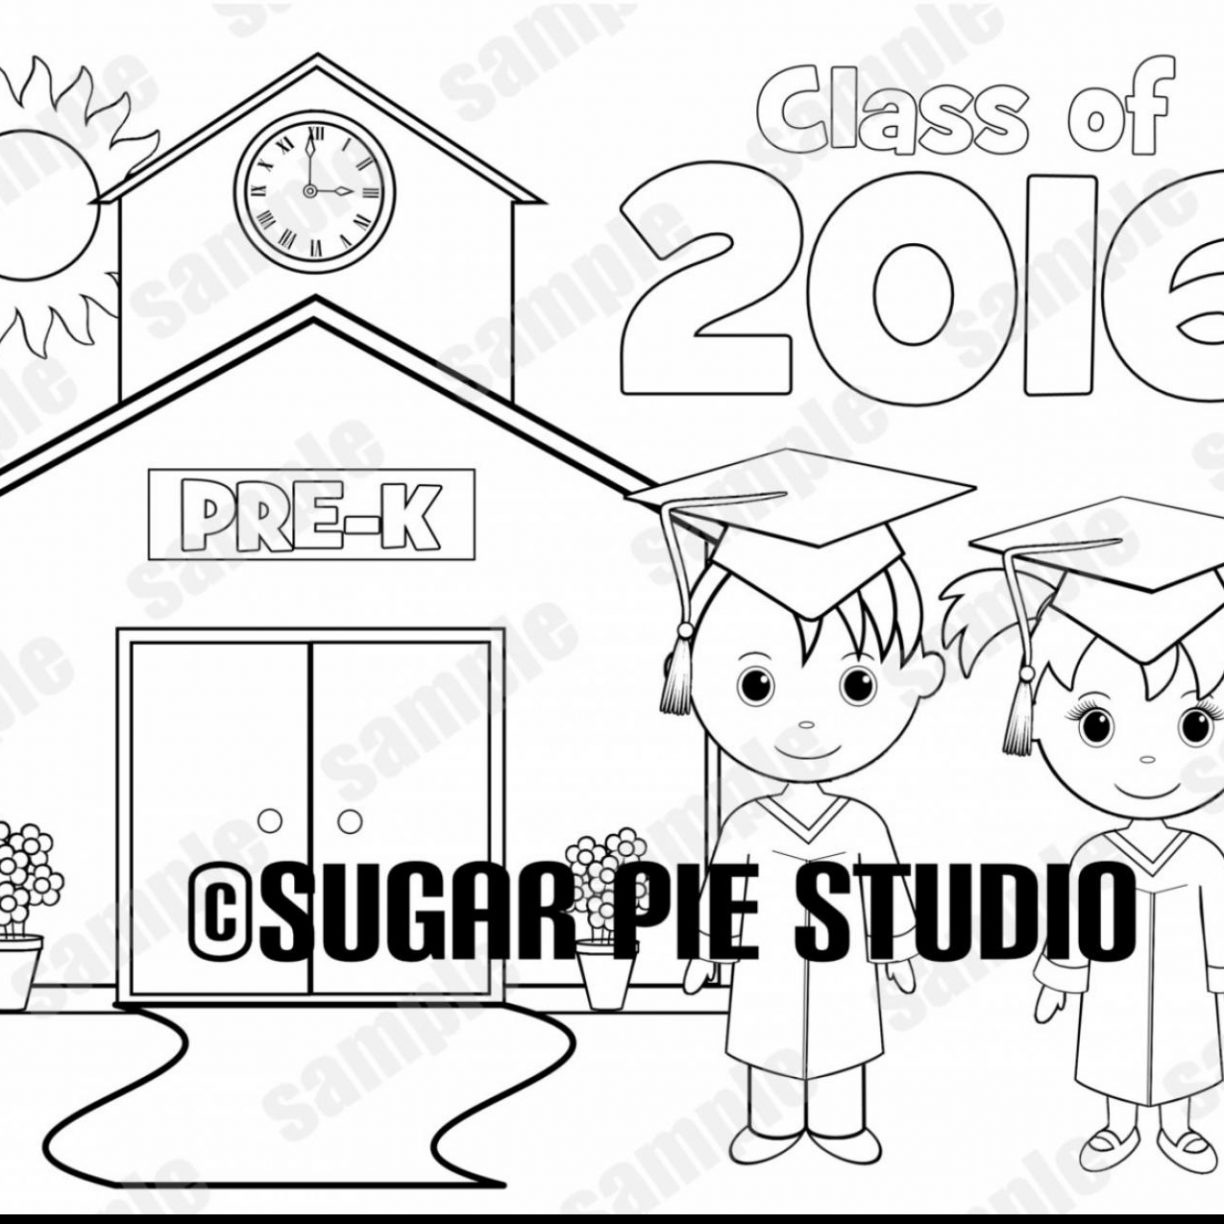 Kindergarten Graduation Coloring Pages At Getcolorings